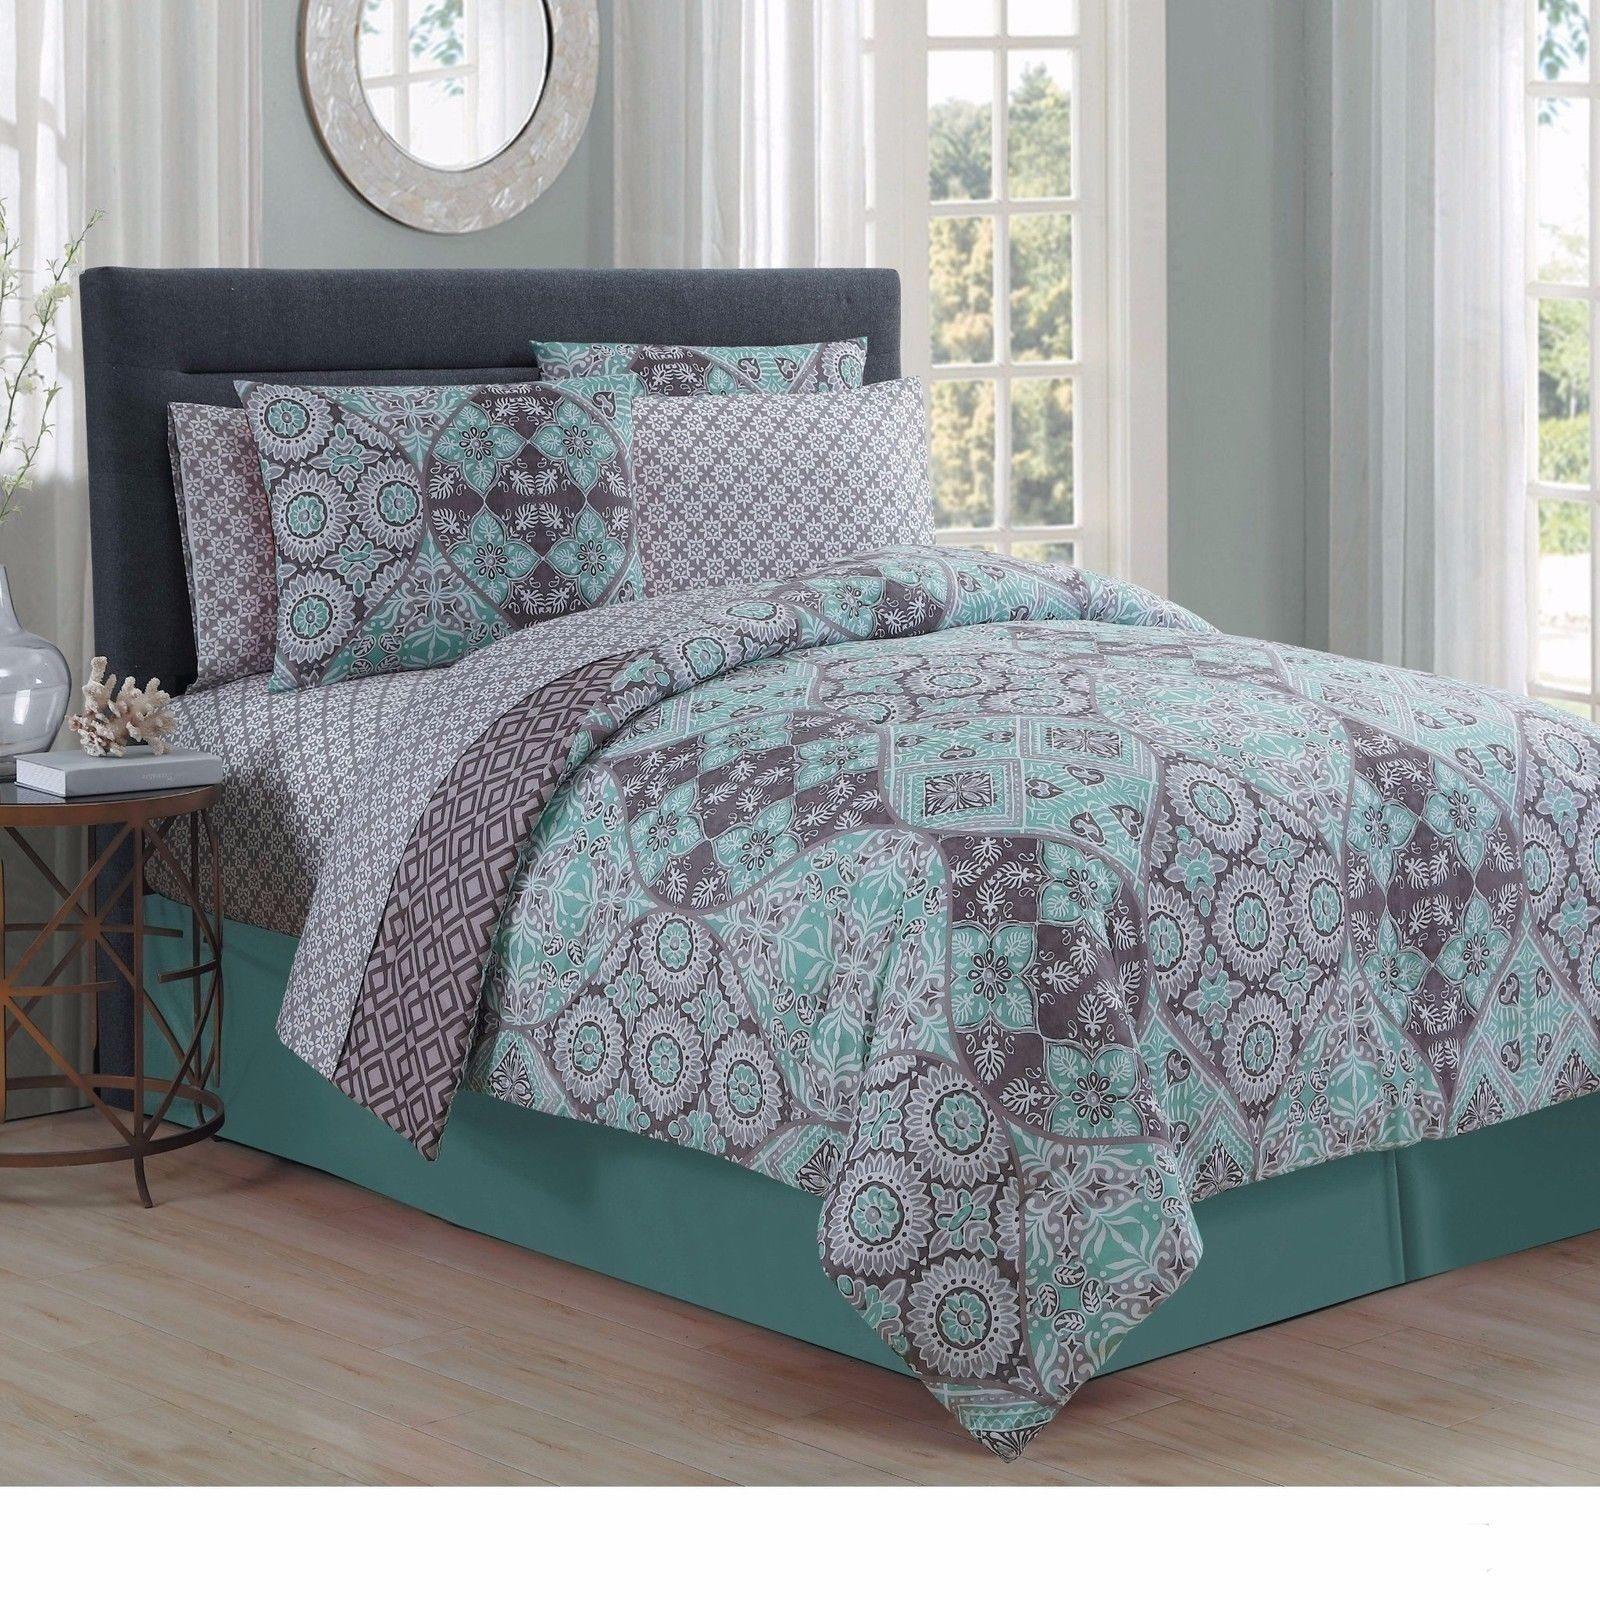 Queen King Bed Bag Mint Green Gray Damask Geometric 8 Pc Comforter Set Beddin The Clearance Castle Llc